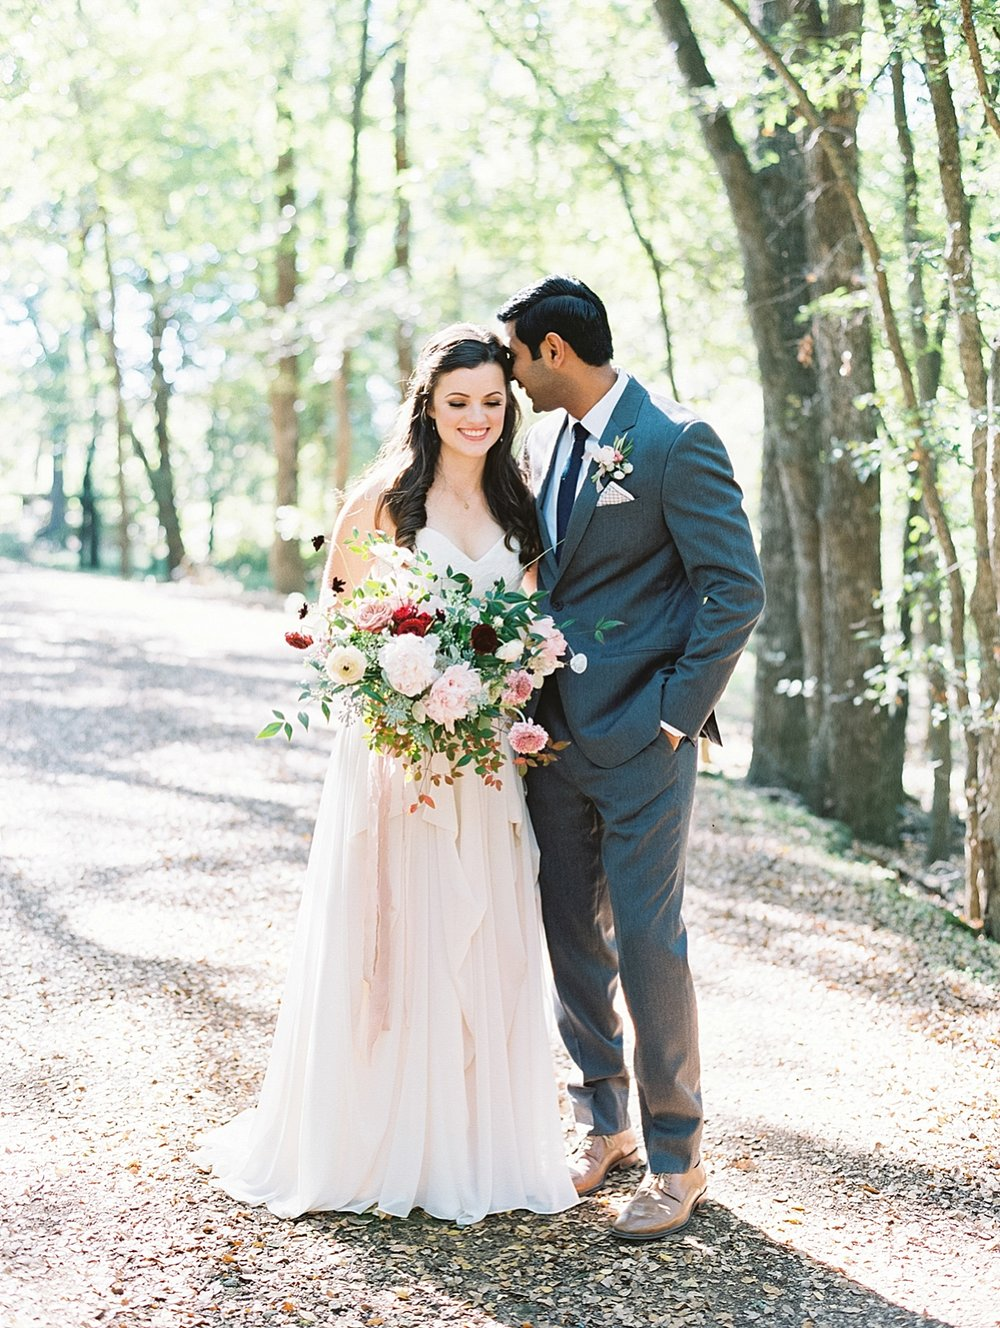 Becca Lea Photography | Dallas Wedding Photographer